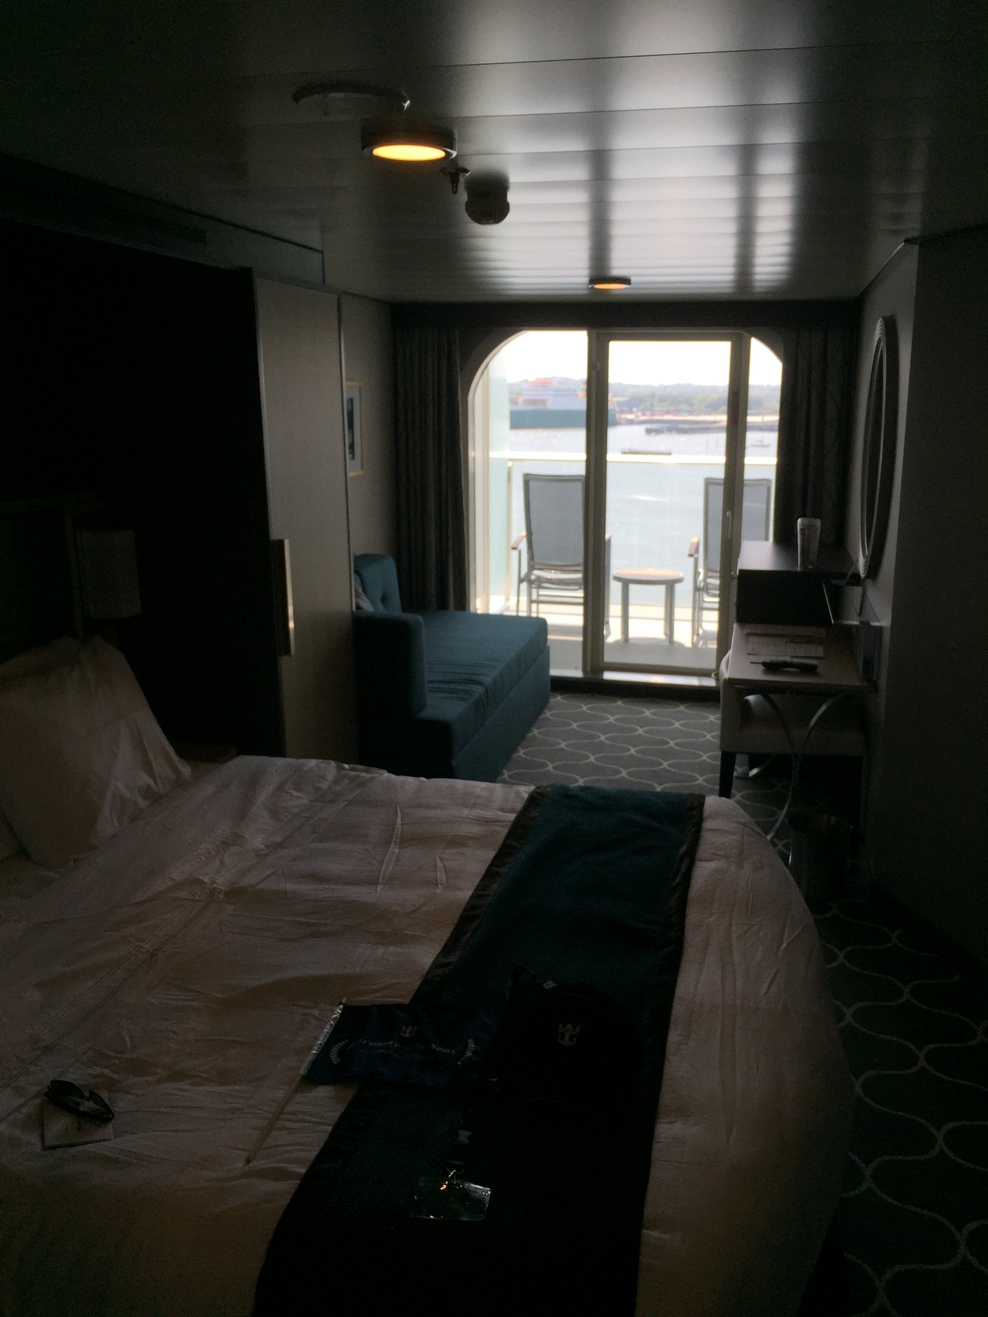 Cabin on royal caribbean harmony of the seas cruise ship for Royal caribbean solo cabins